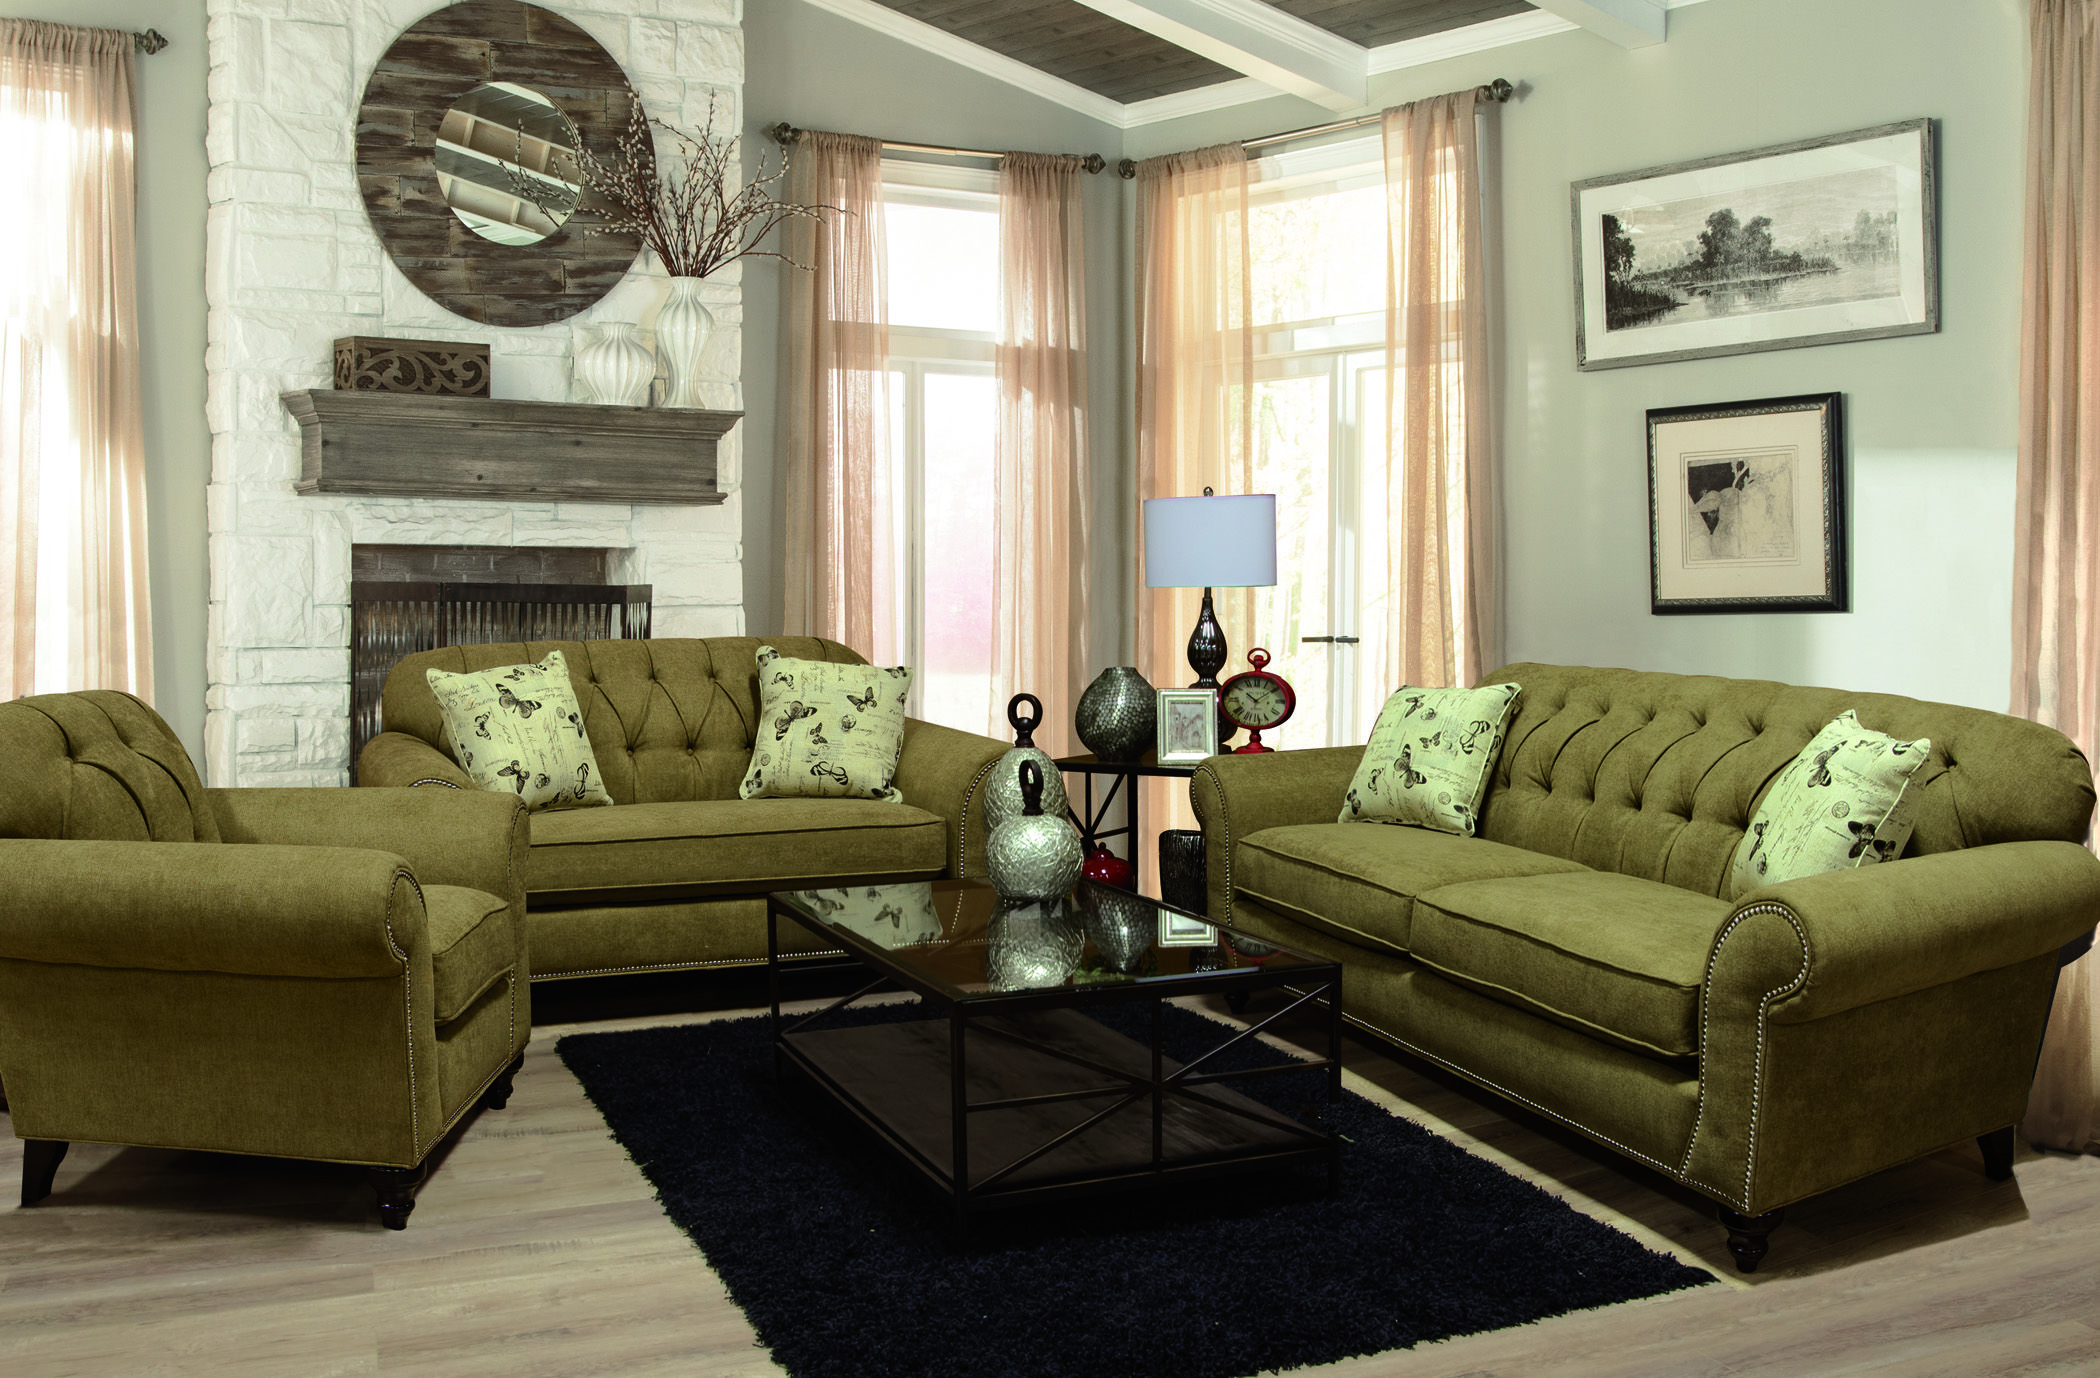 England Furniture 5734 5735 5736 with Caprice Bronze and